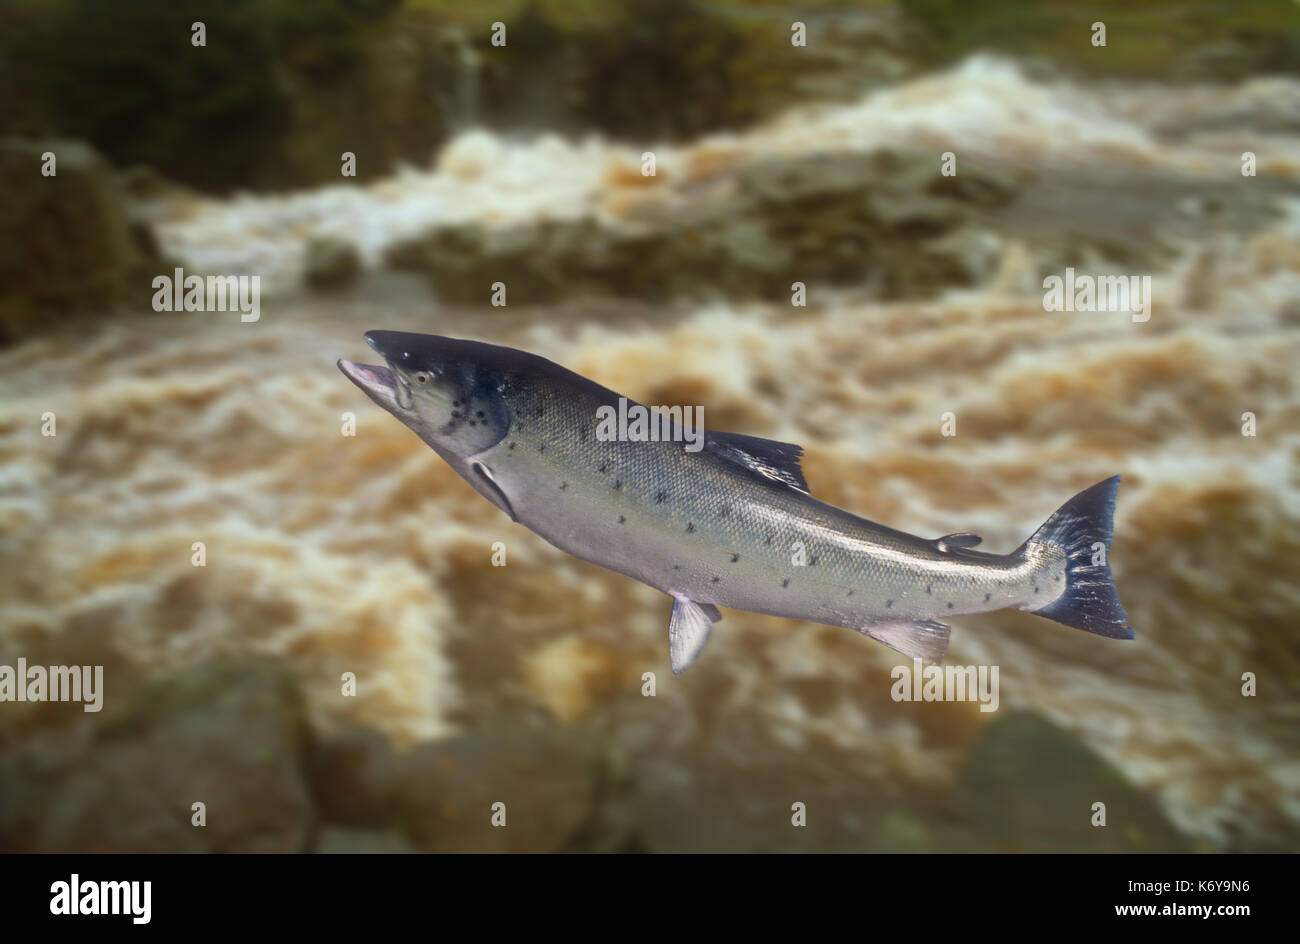 Leaping salmon with out of focus river as background - Stock Image